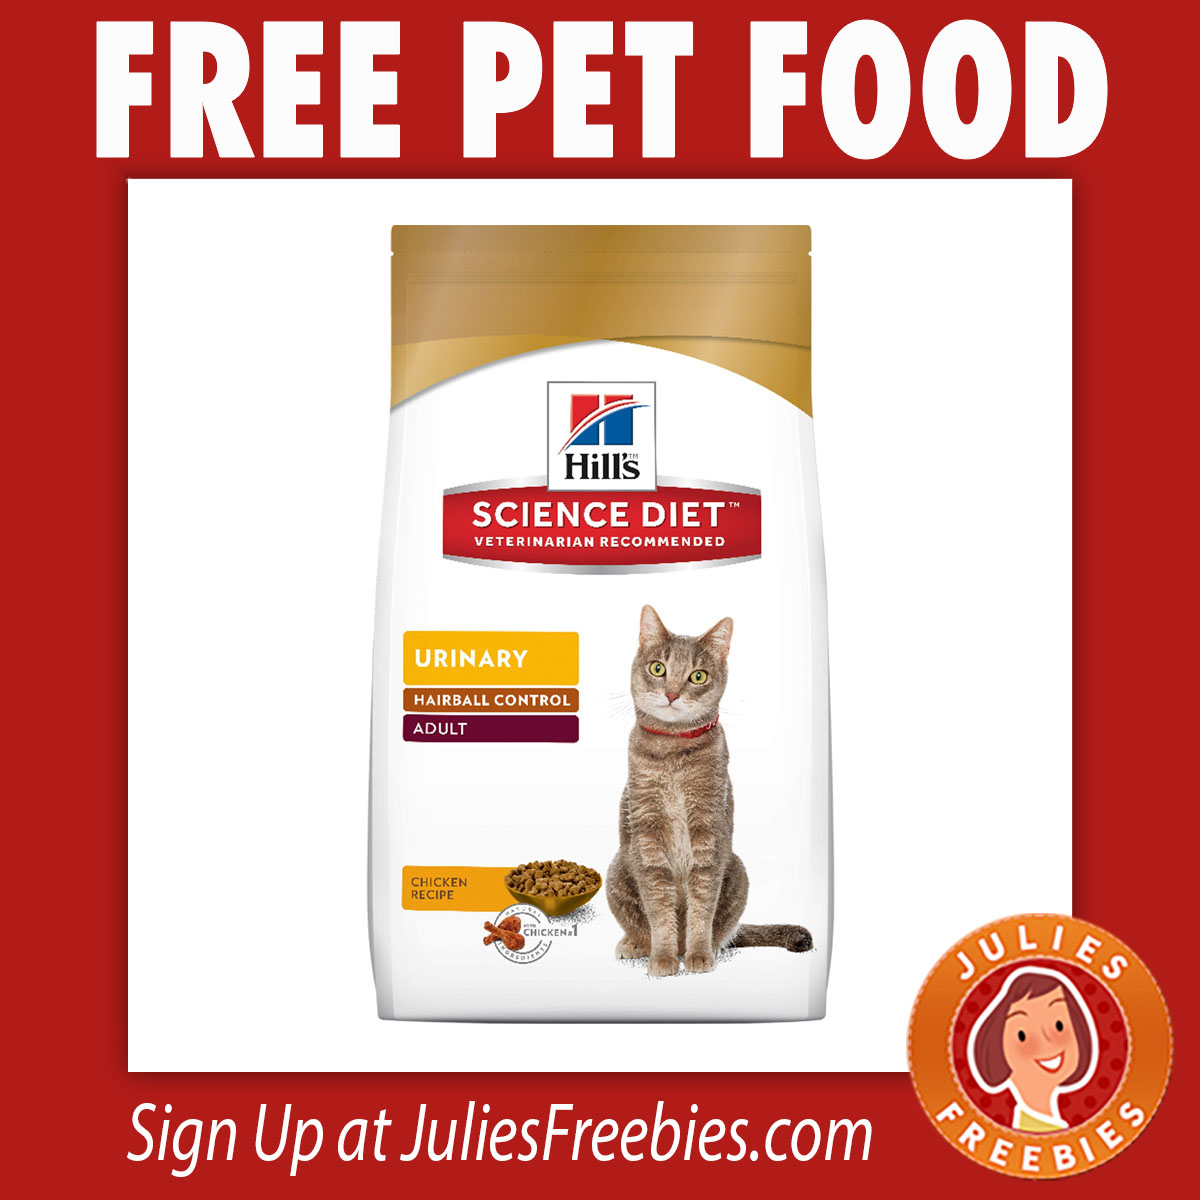 Free Bag Of Hills Science Diet Pet Food At PetSmart